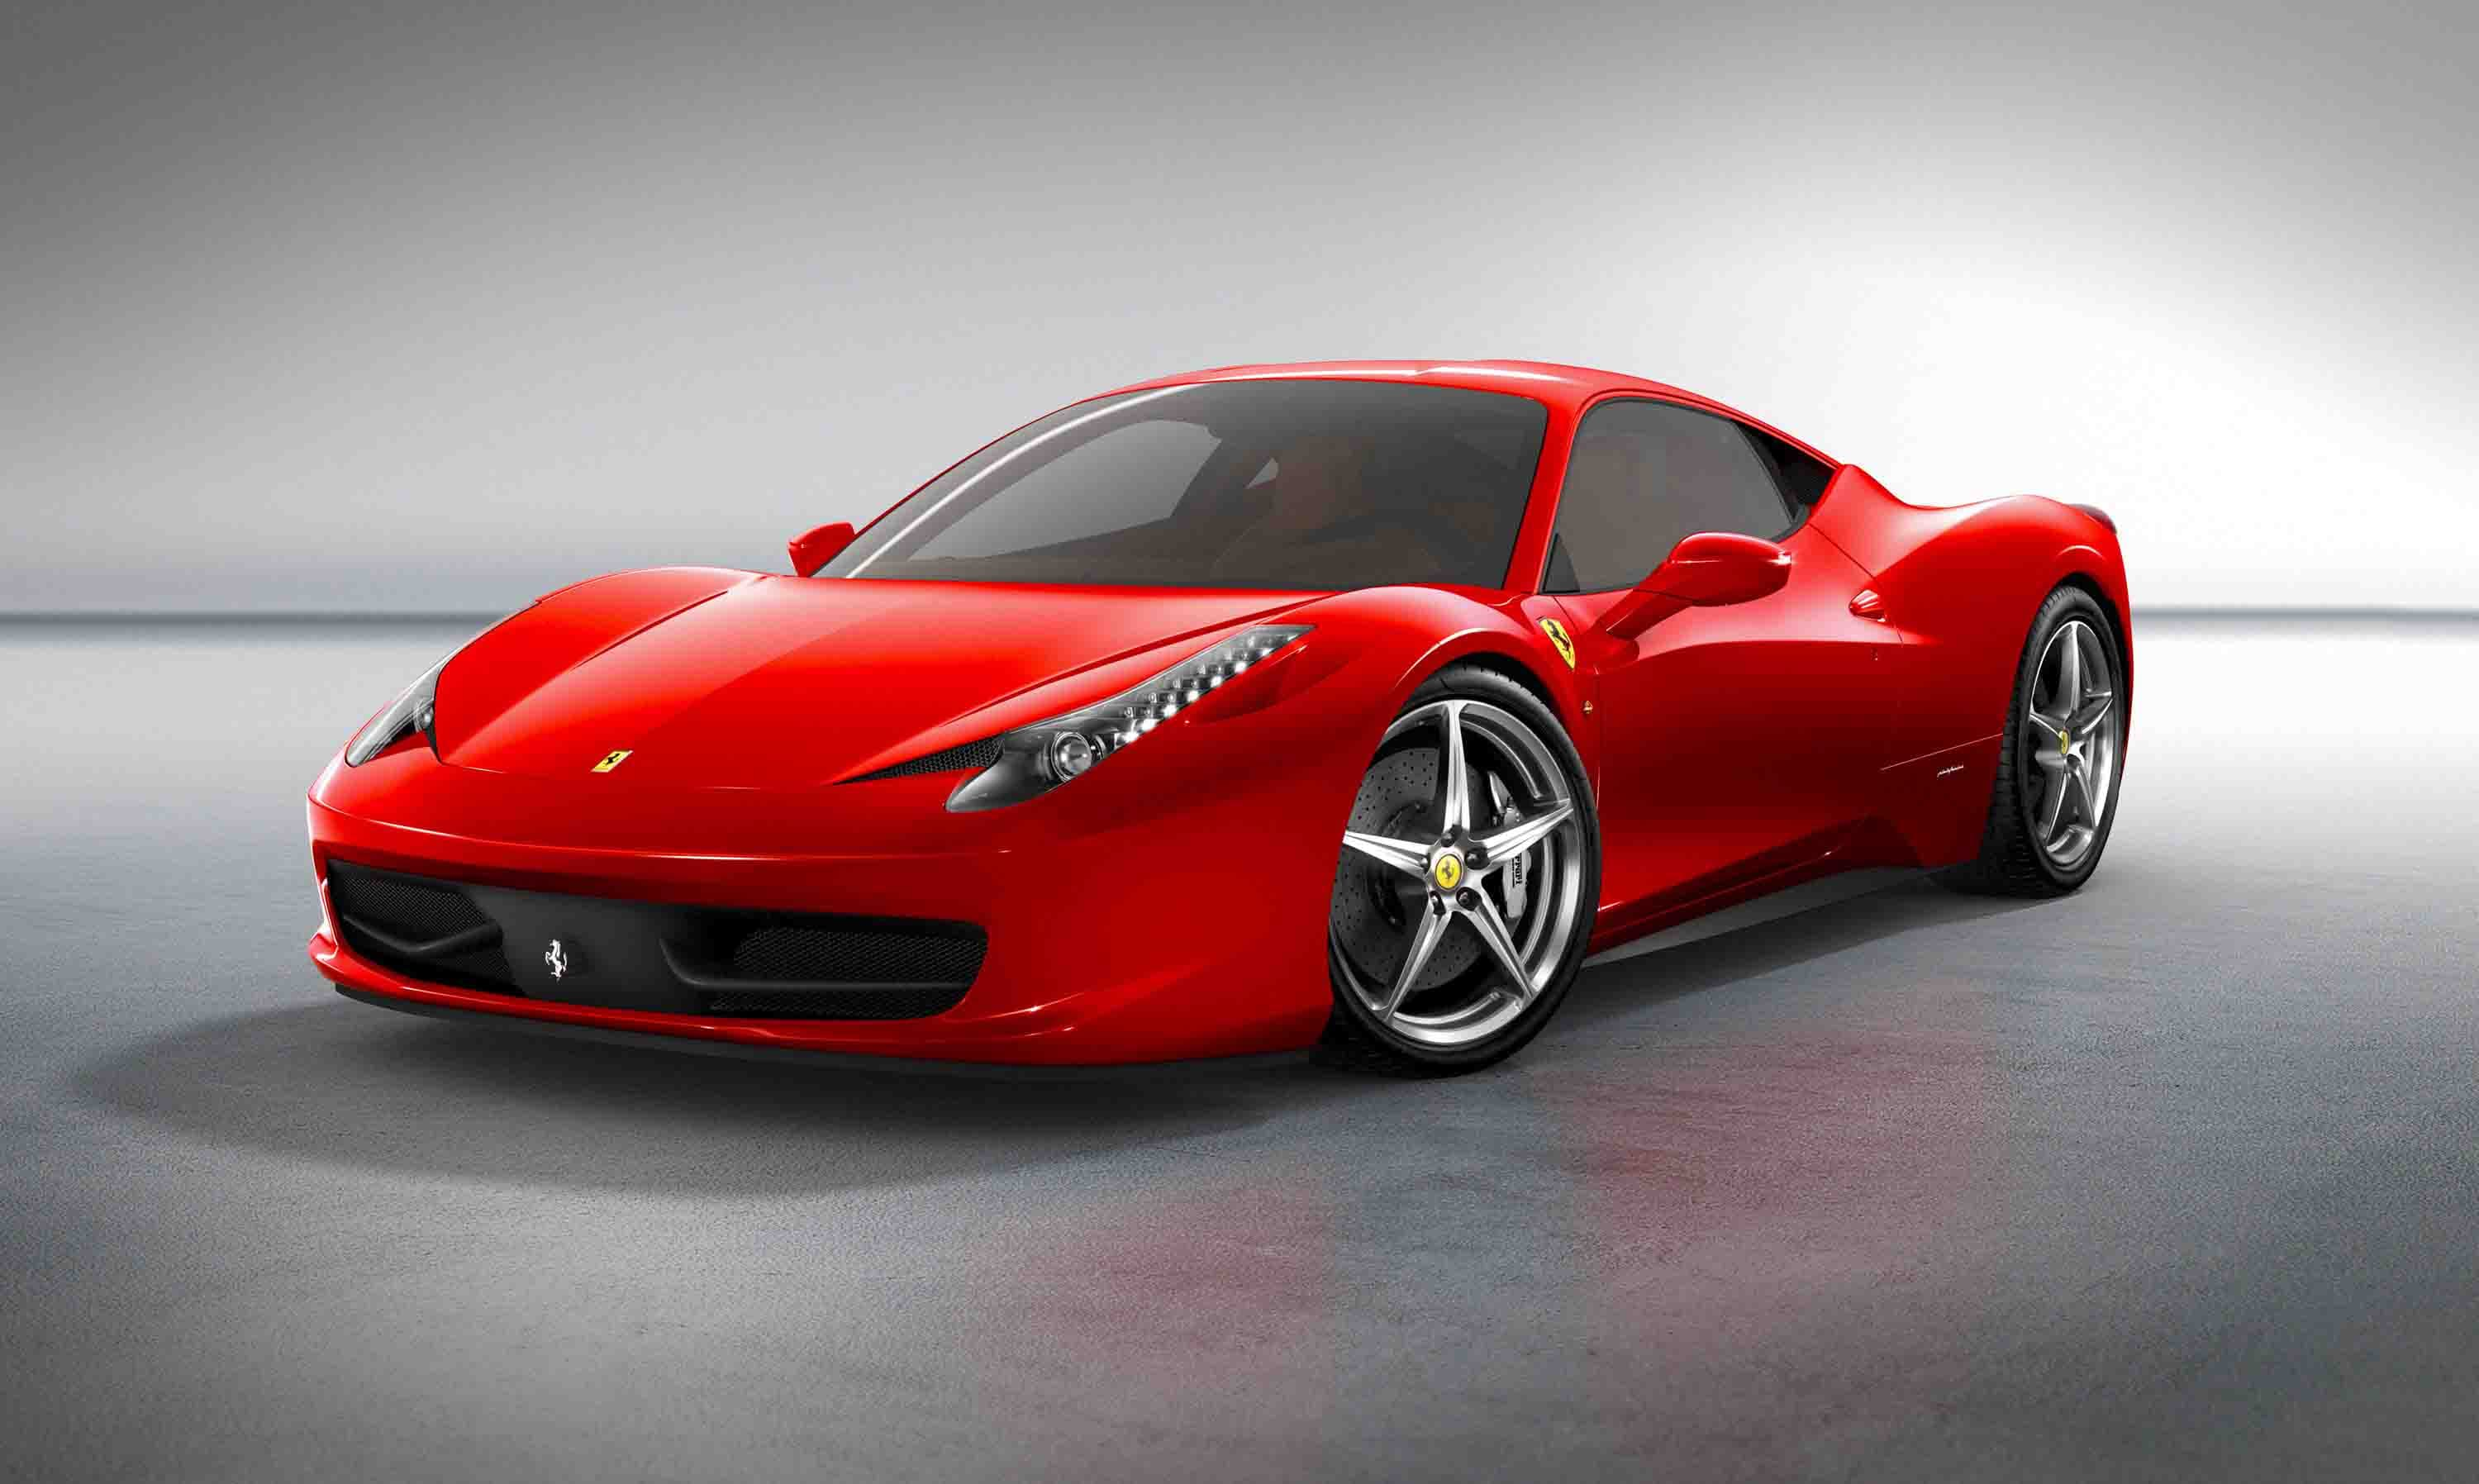 ferrari cars prices reviews new ferrari cars in india specs news. Black Bedroom Furniture Sets. Home Design Ideas